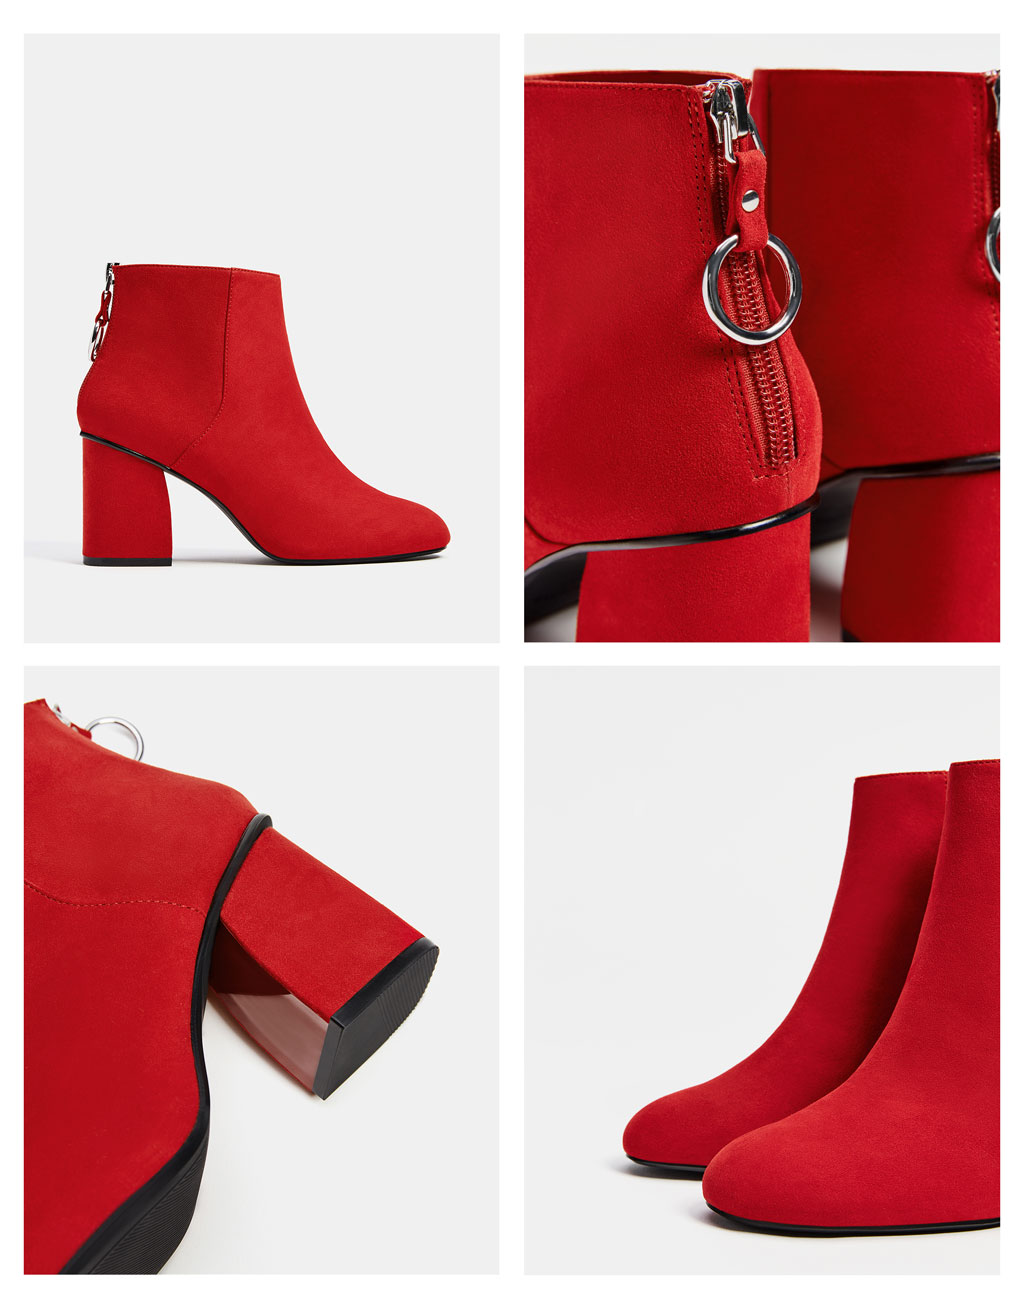 High heel ankle boots with ring detail